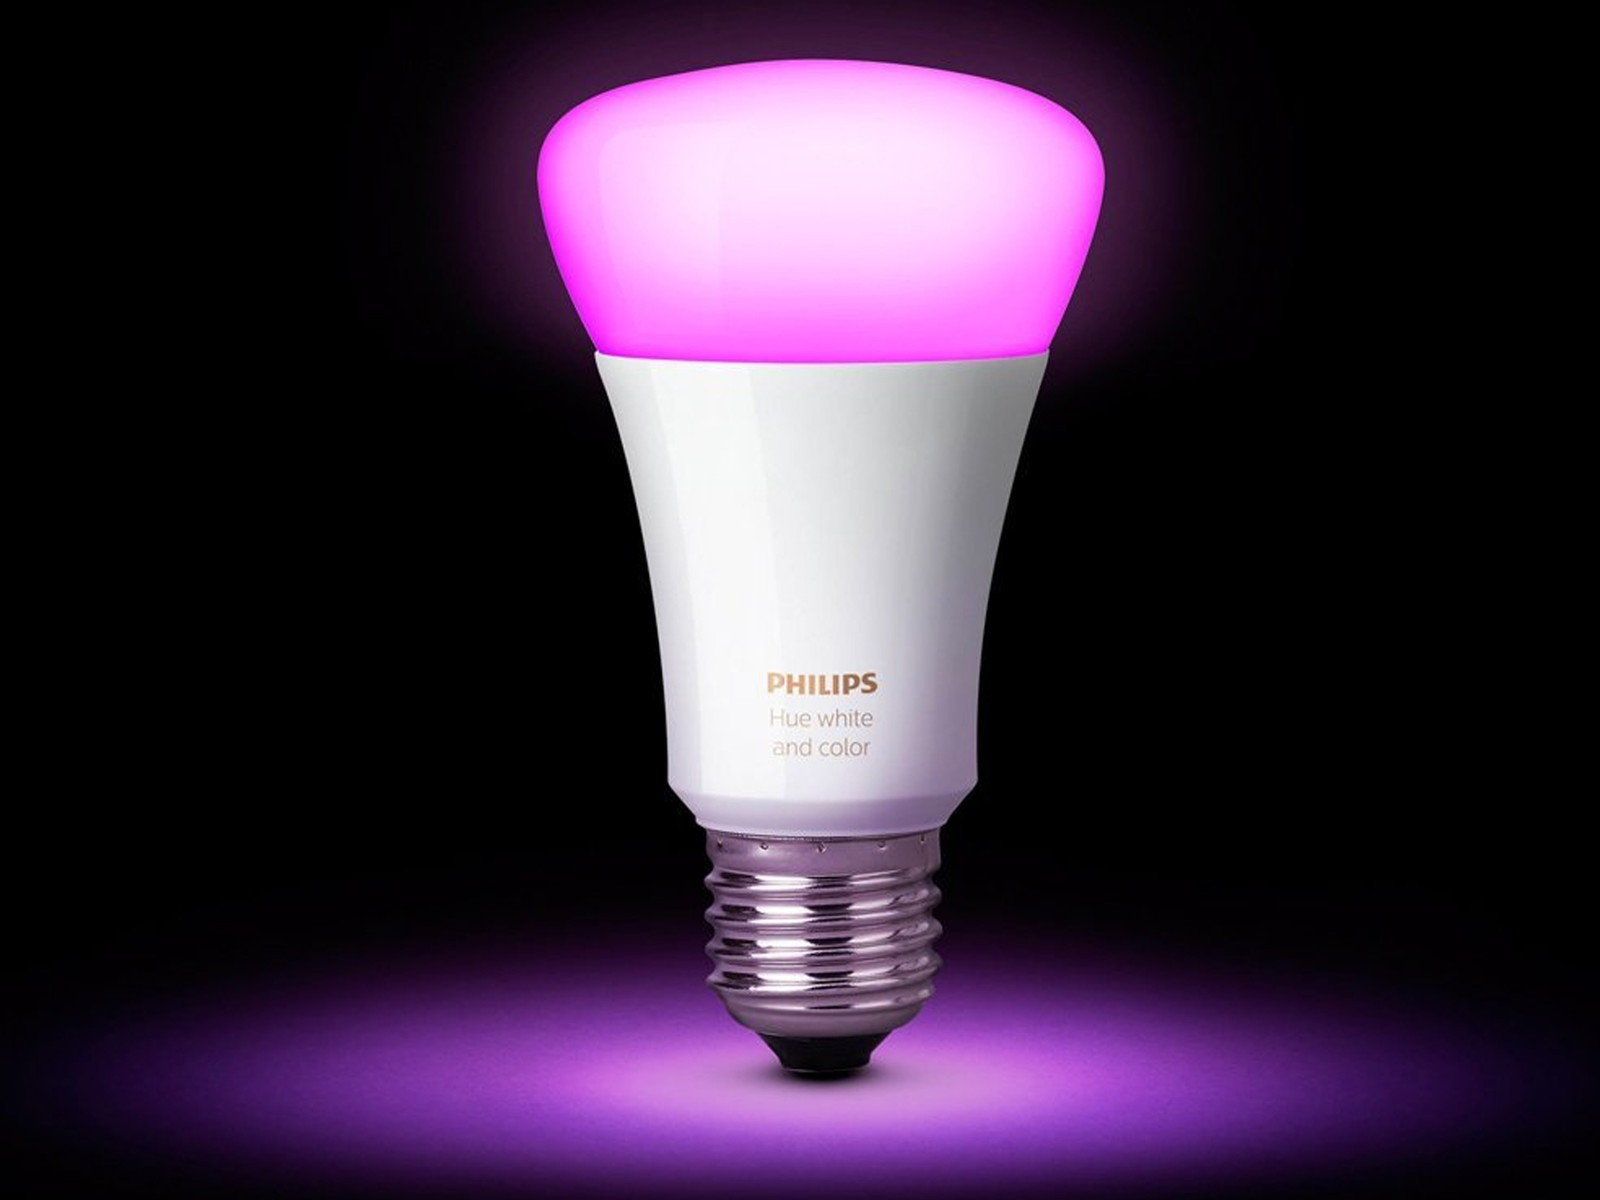 Add some color to your home with 3rd gen philips hue bulbs for 41 choose between millions of colors and shades of white light to light your home wirelessly control with your smartphone or tablet and sync your light aloadofball Gallery